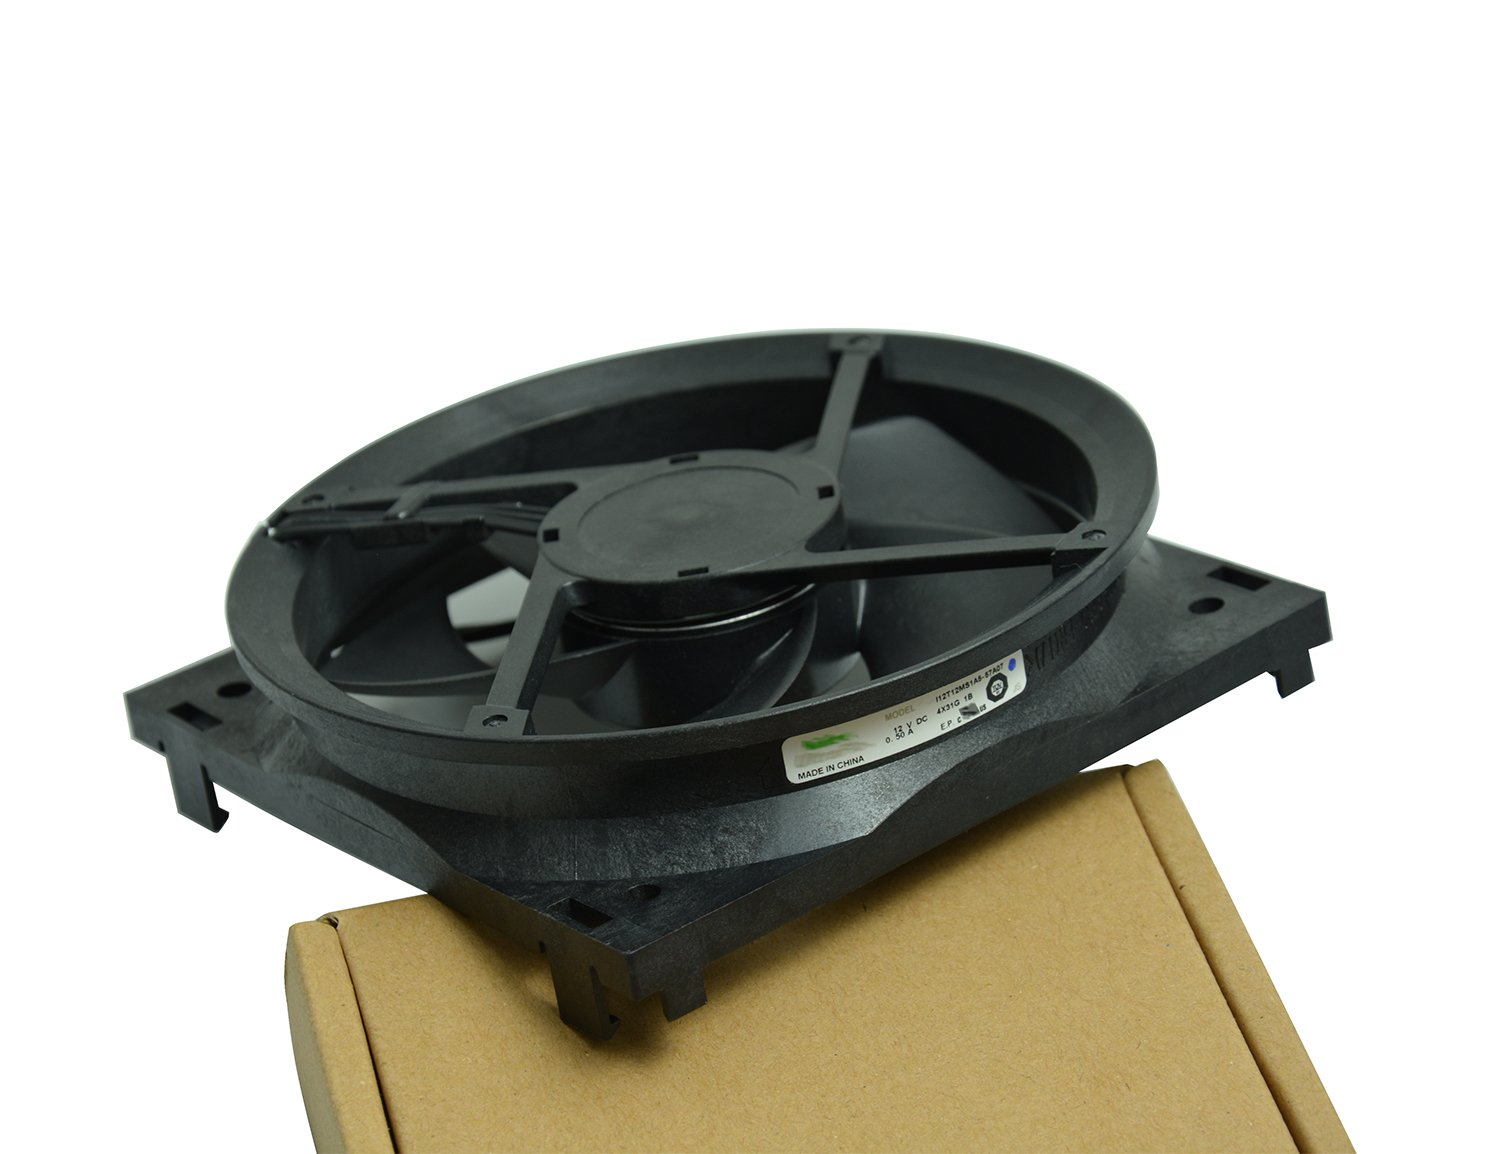 New Replacement Internal Cooling Fan for XBOX One series Compatible with part number PVA120G12R-P01 I12T12MS1A5-57A07